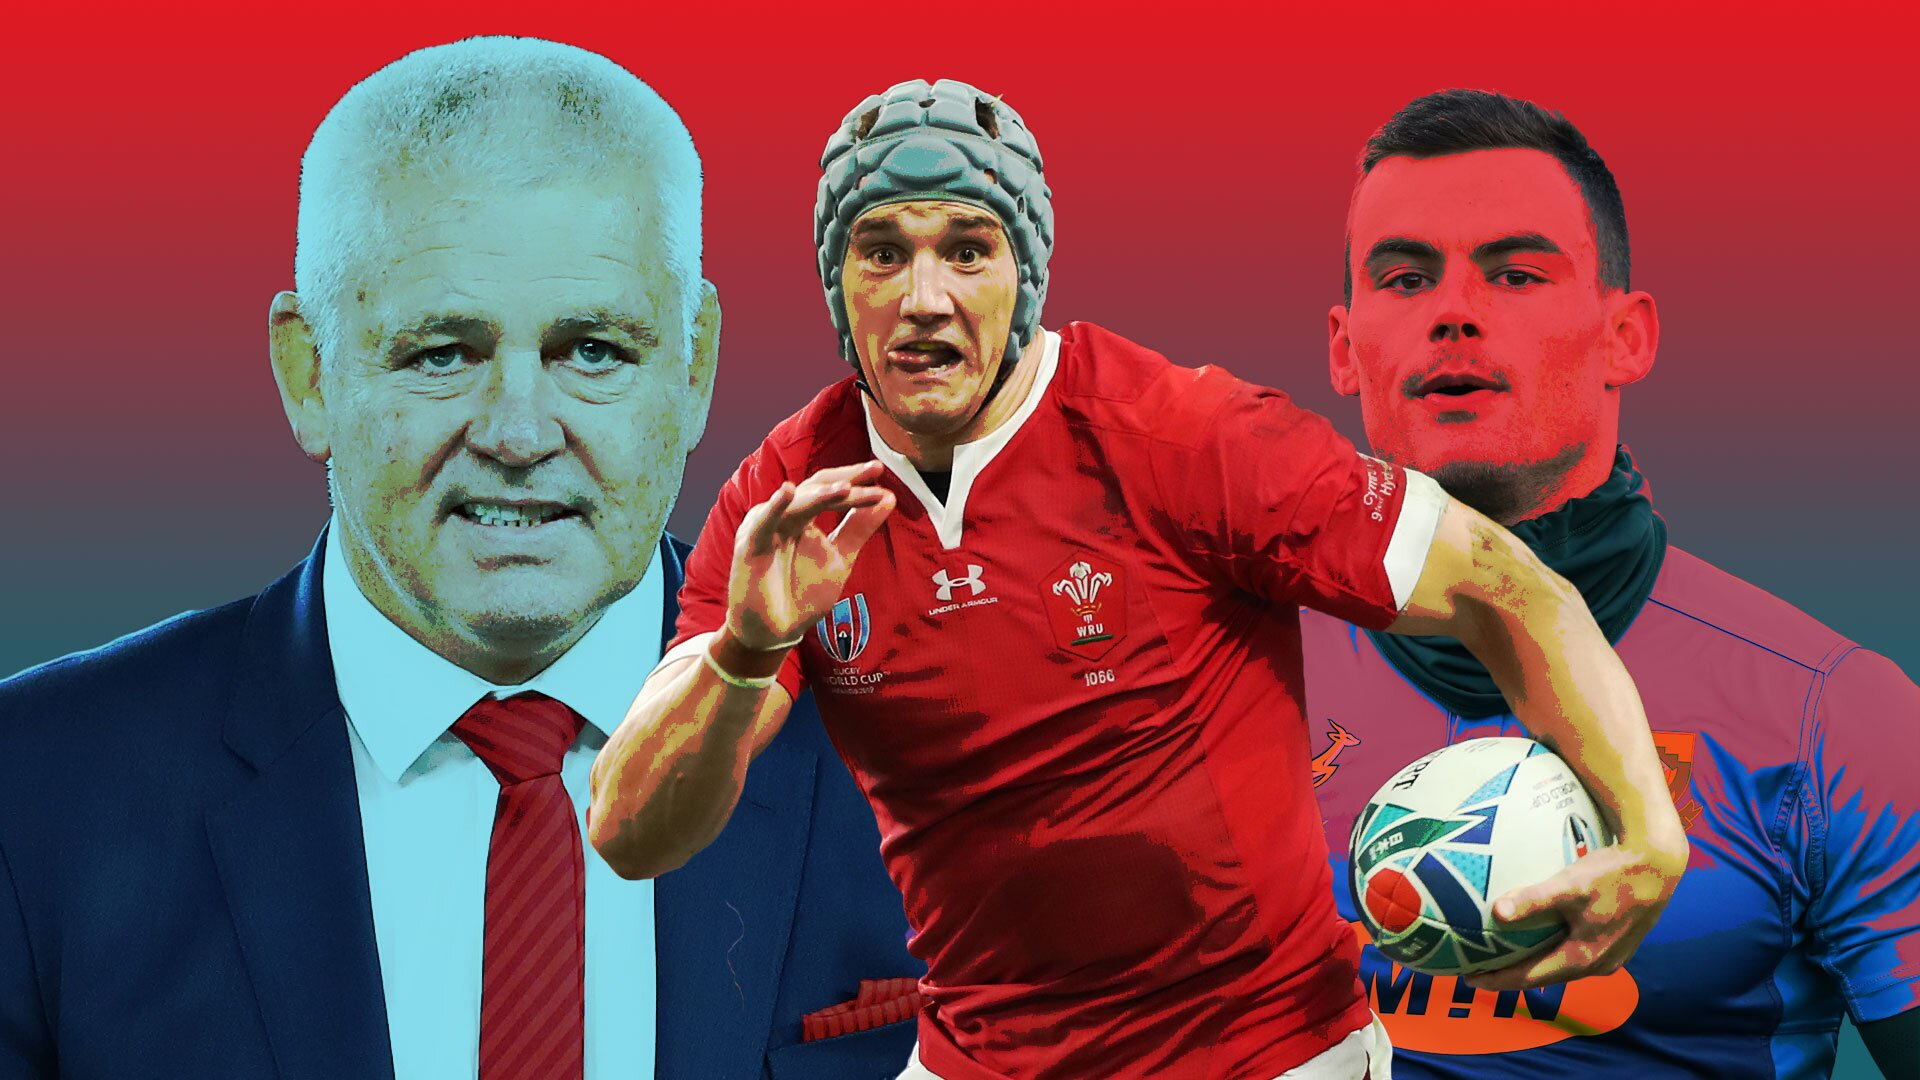 Analysis: The blueprint Gatland provided that shows how to expose the Springboks defence